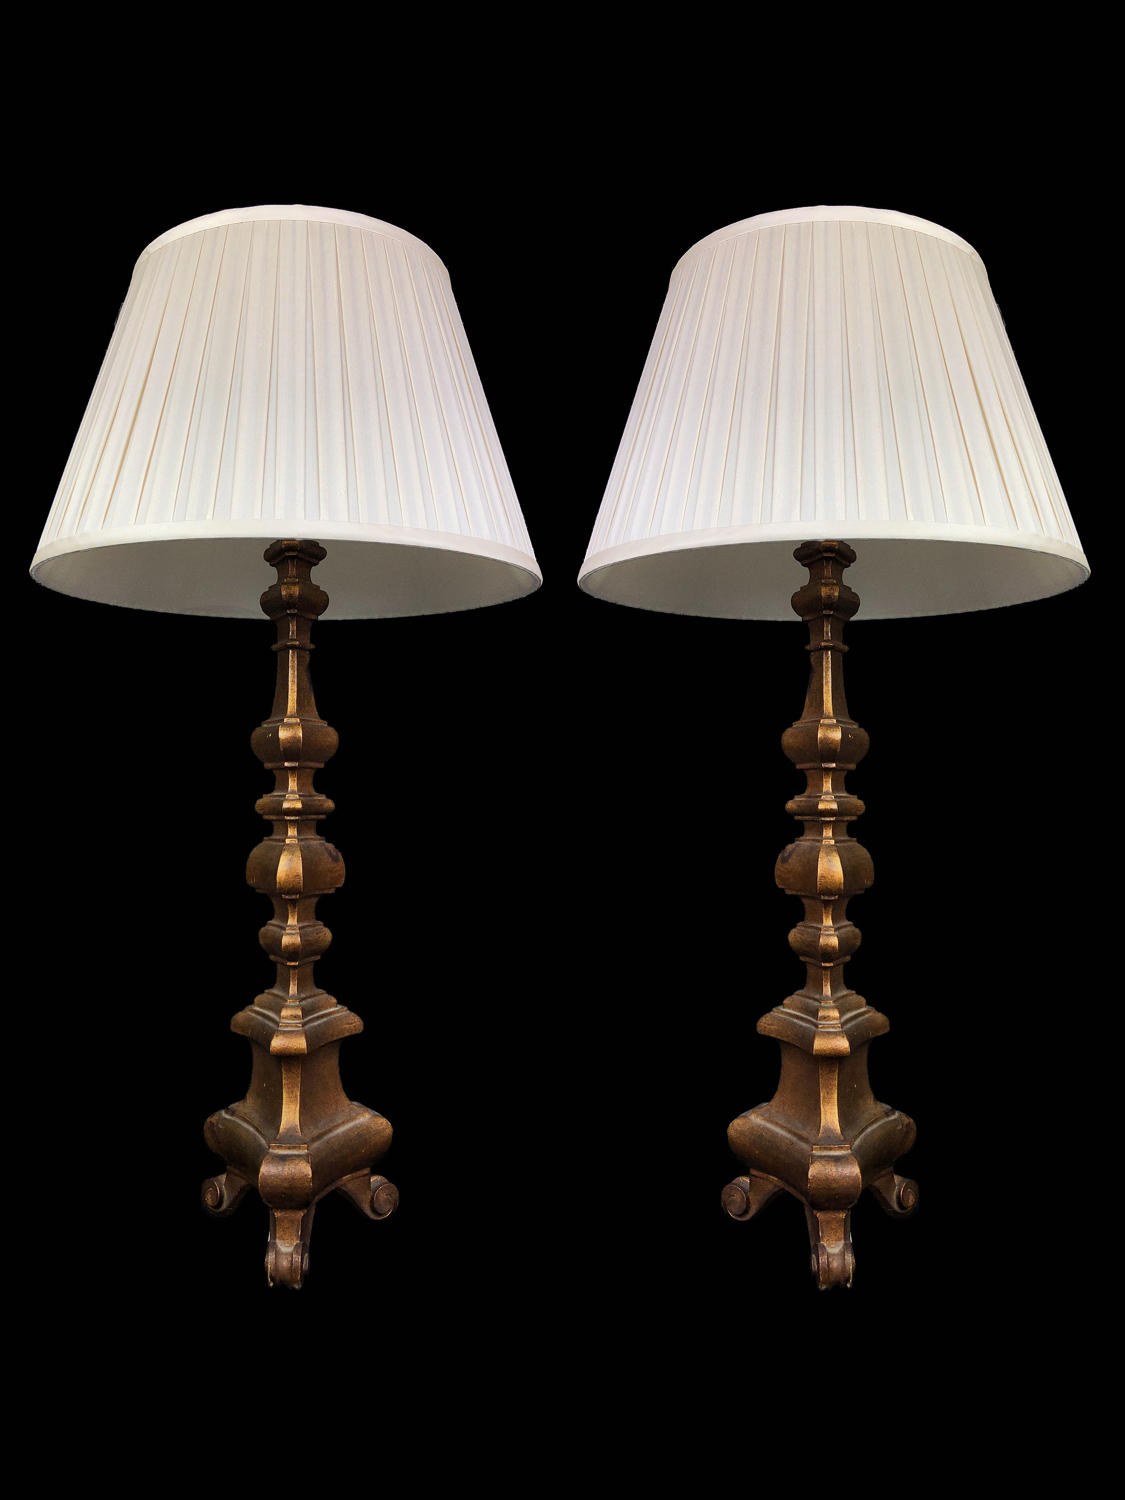 A pair of gilt-wood alter candlestick lamps